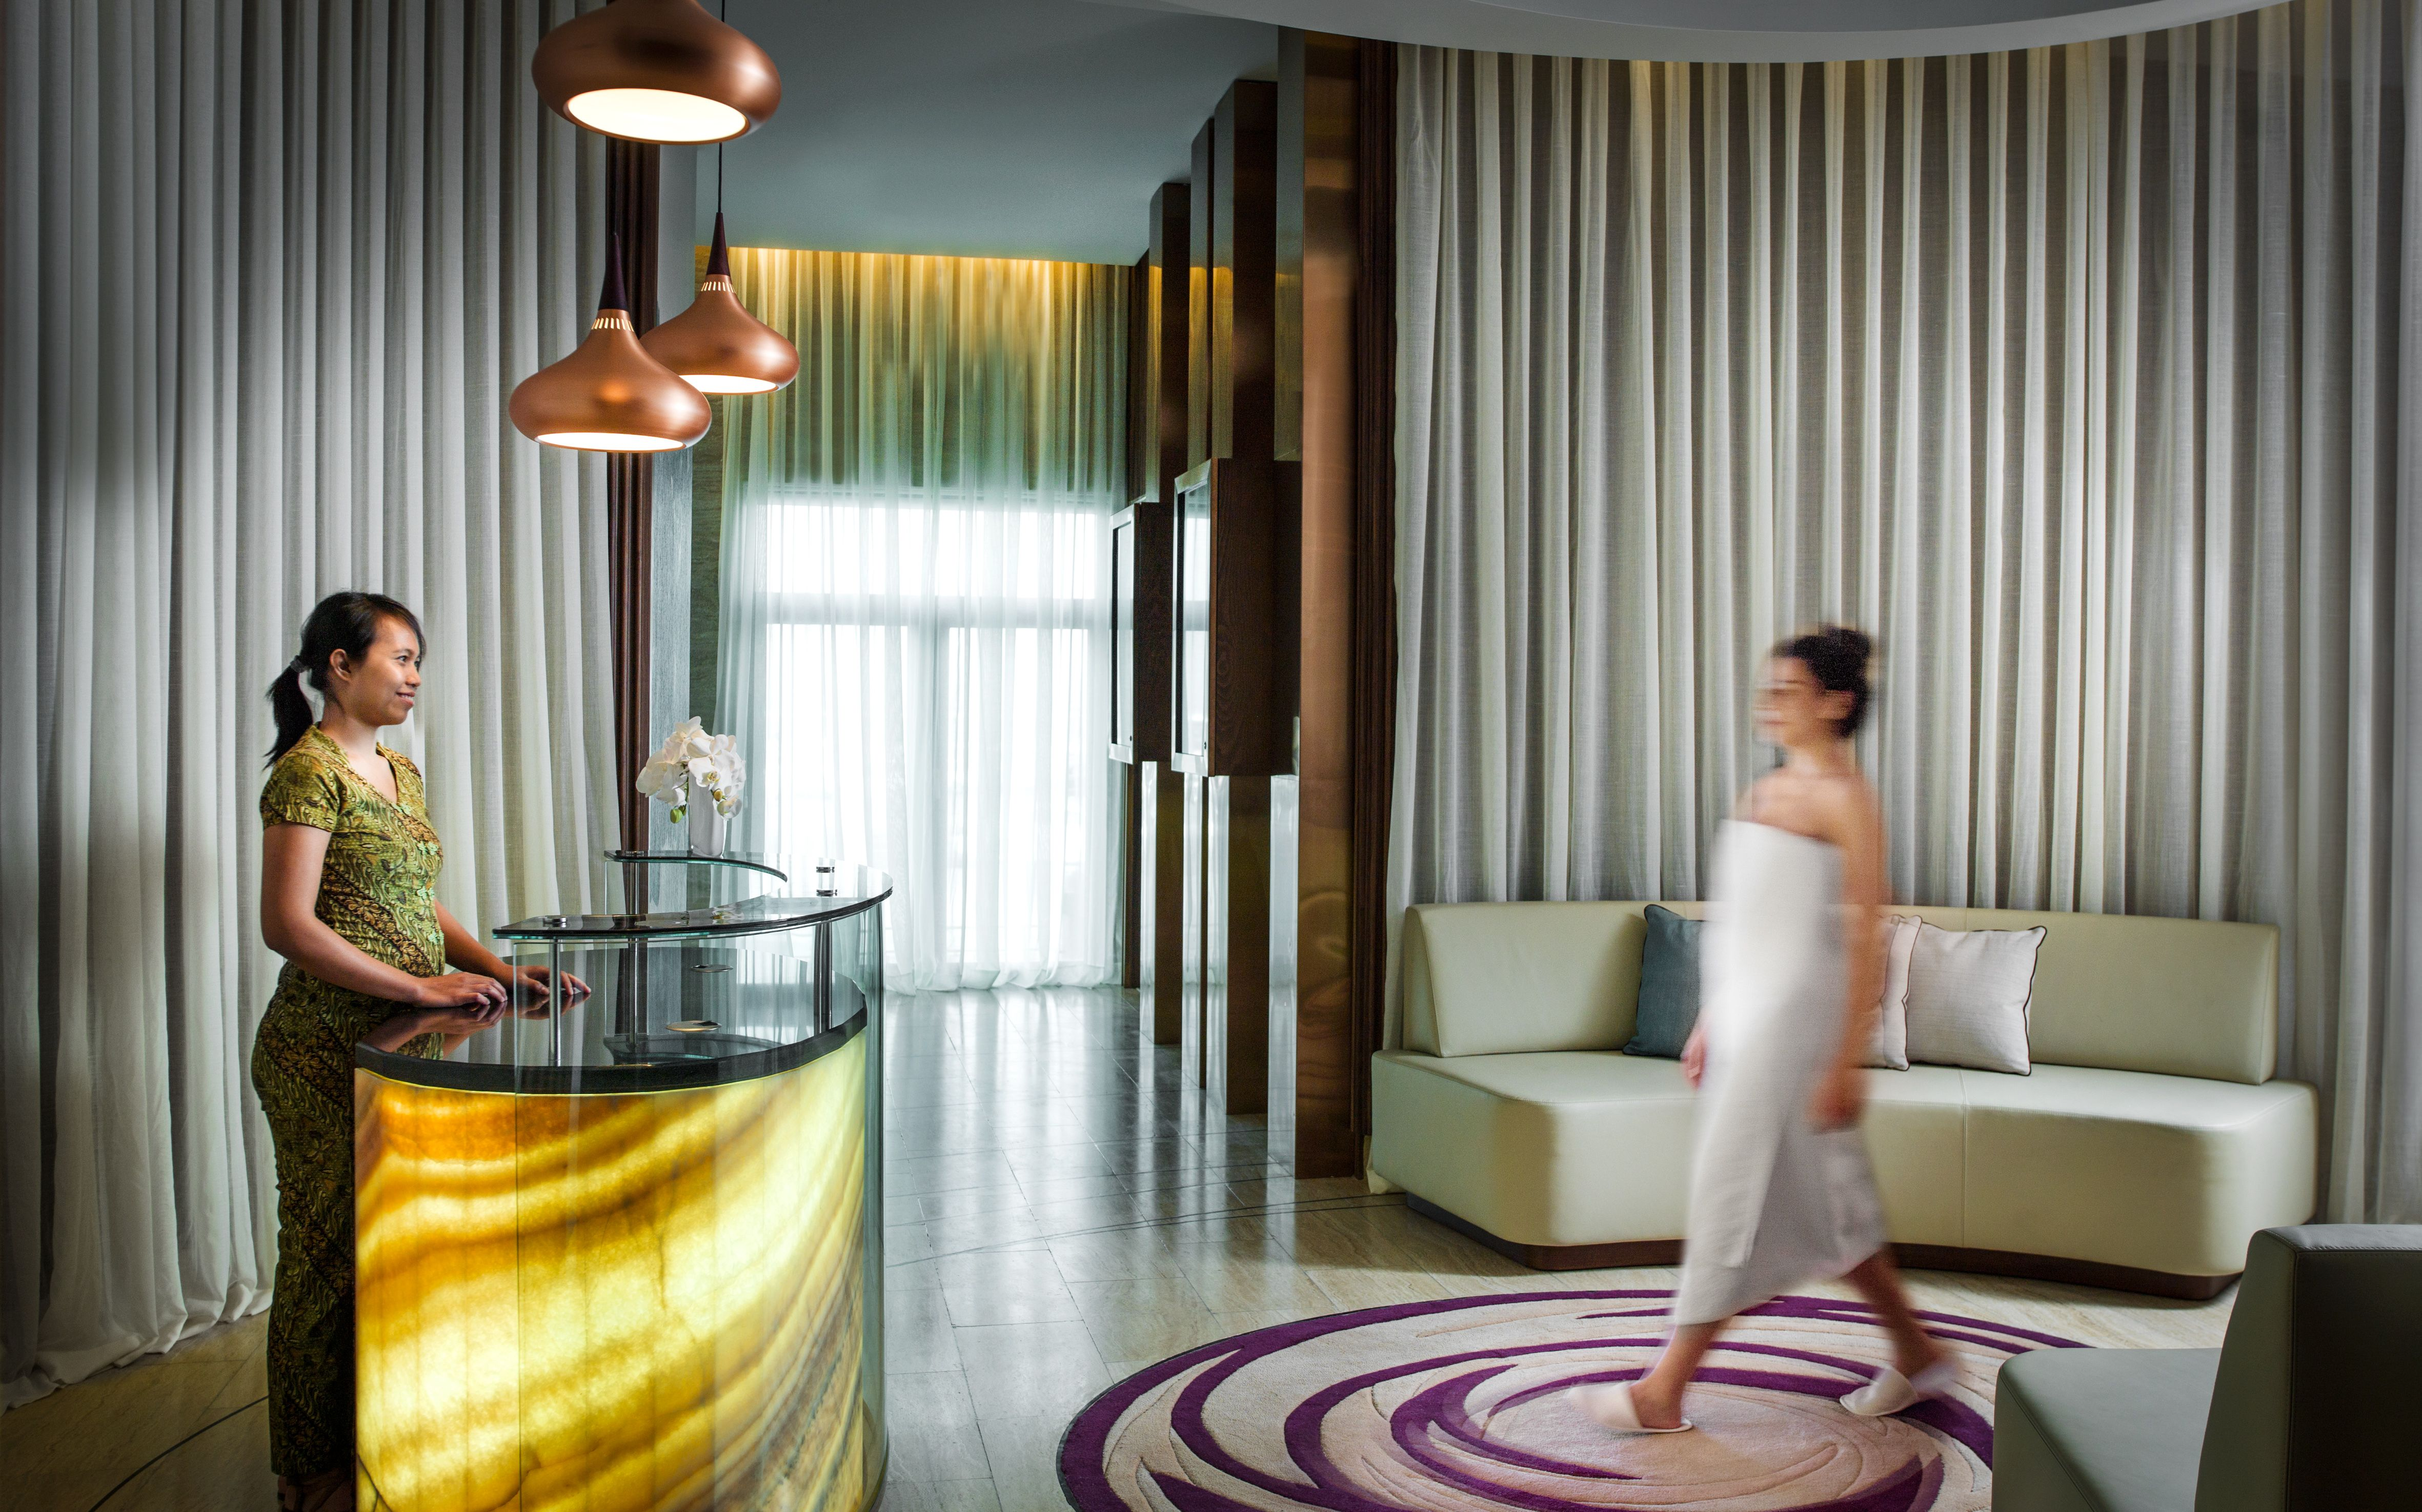 Guests Can Take Advantage Of The Day Spa And Wellness Area In Intourist Hotel Baku Which Consists Of A High Tech G Hotel Design Architecture Hotel Decor Hotel